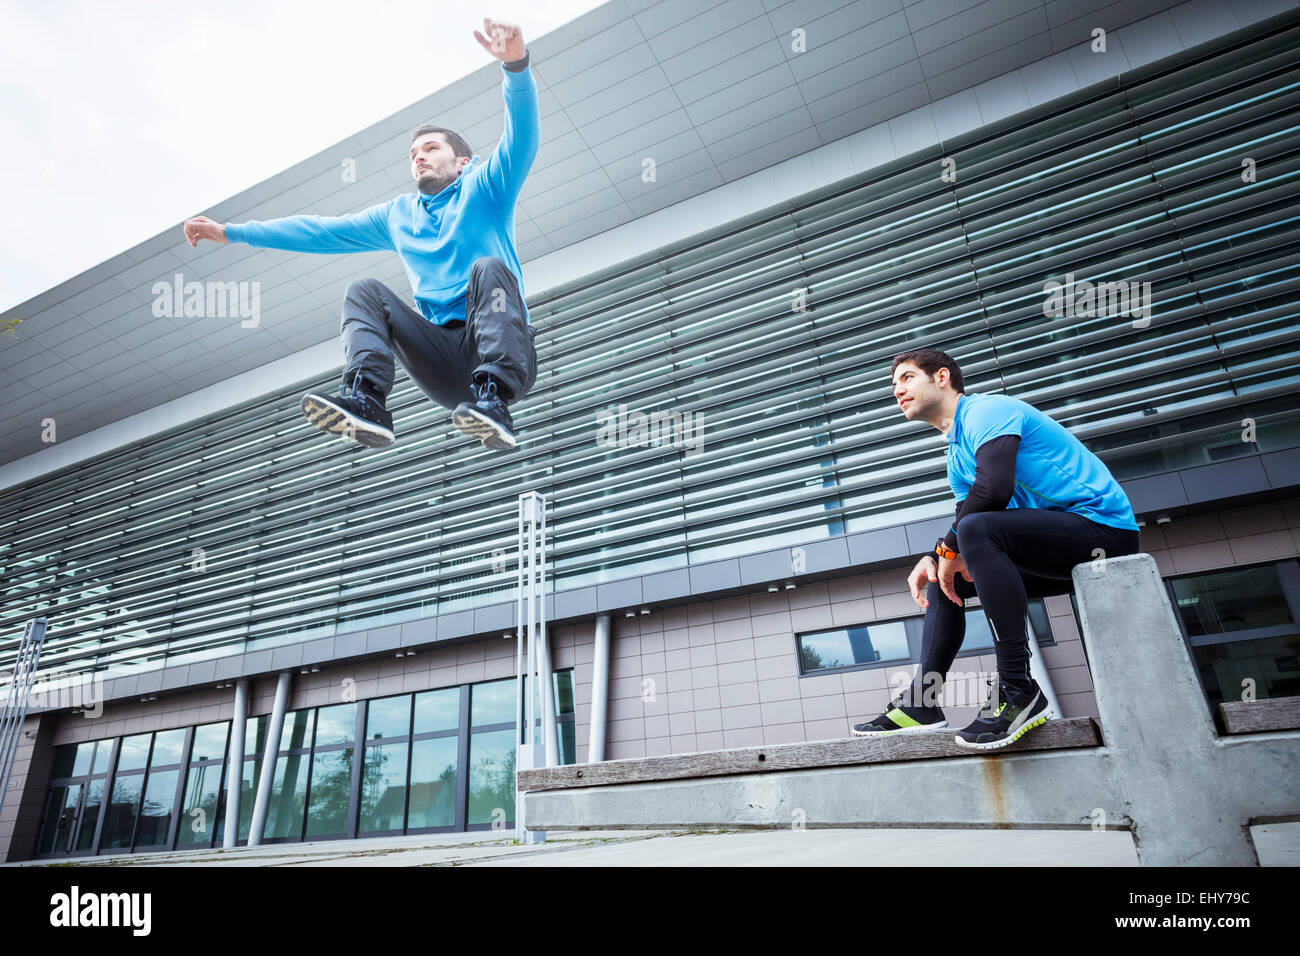 Male runners doing sports training in city - Stock Image